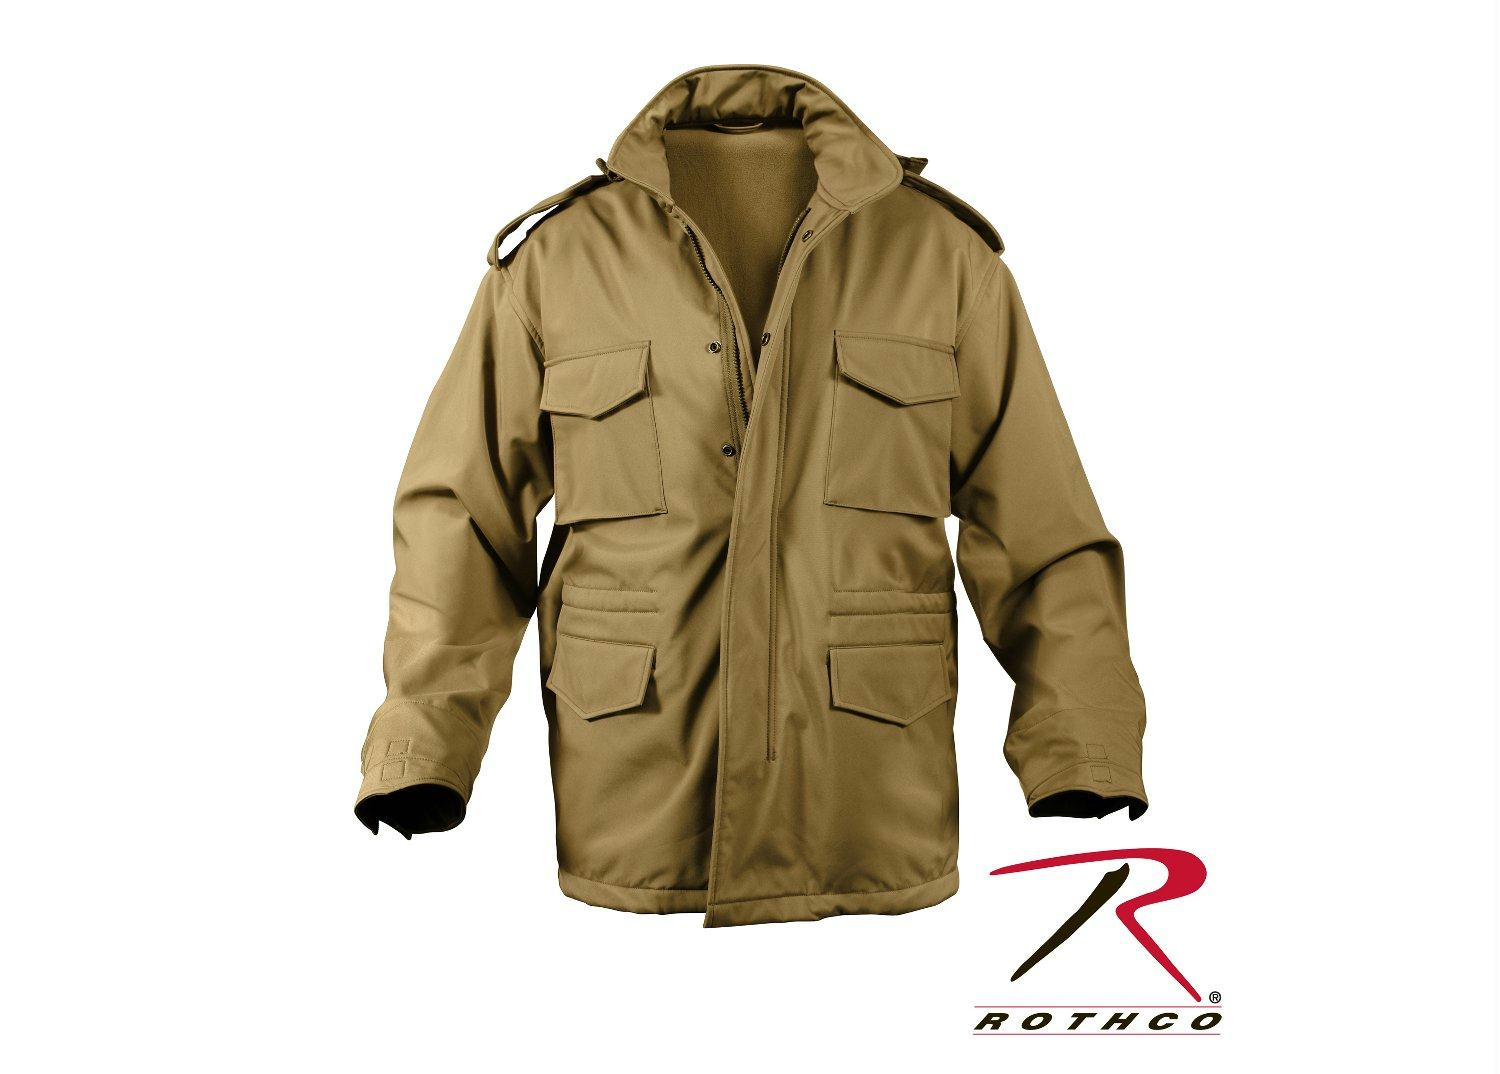 Rothco Soft Shell Tactical M-65 Field Jacket - Coyote Brown / S